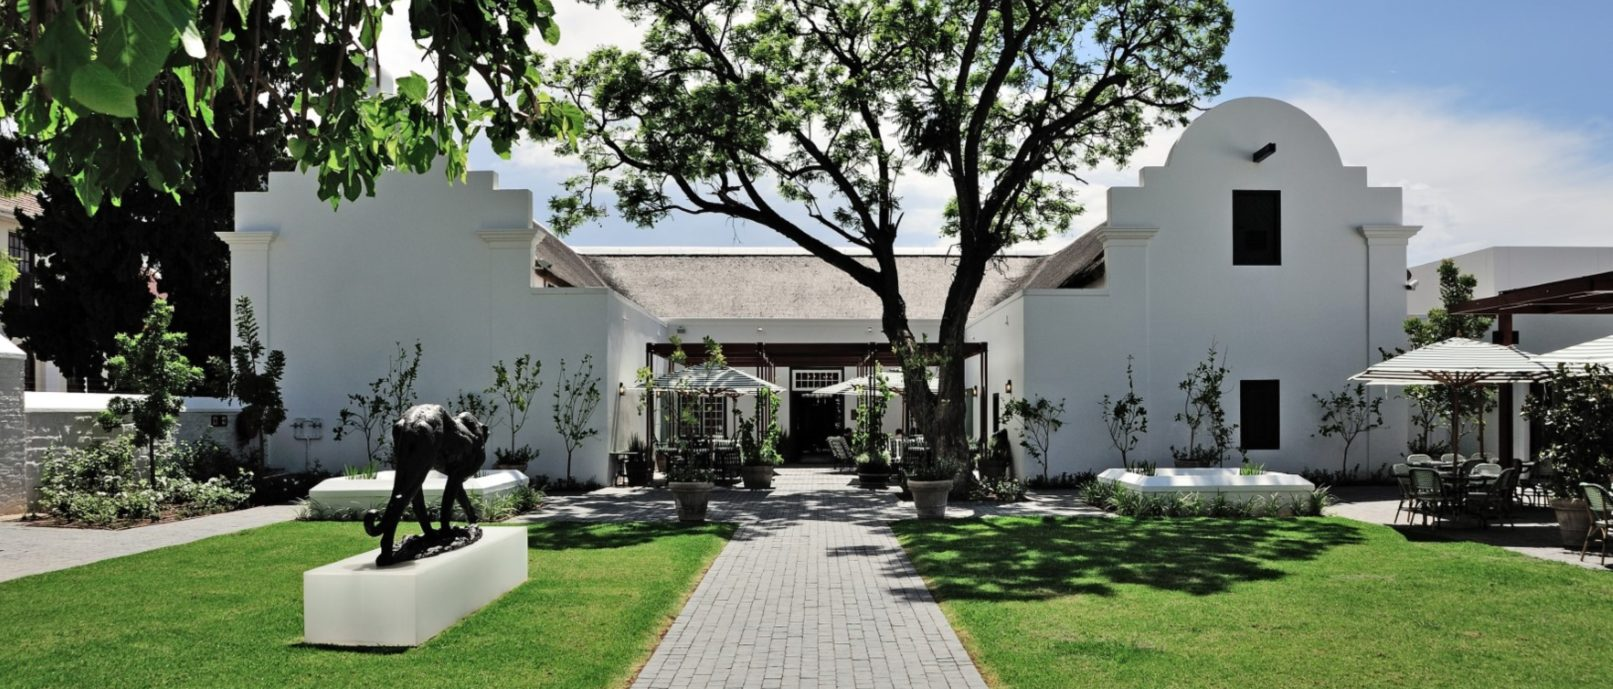 Drostdy Hotel scoops Eastern Cape Institute of Architects Regional Award